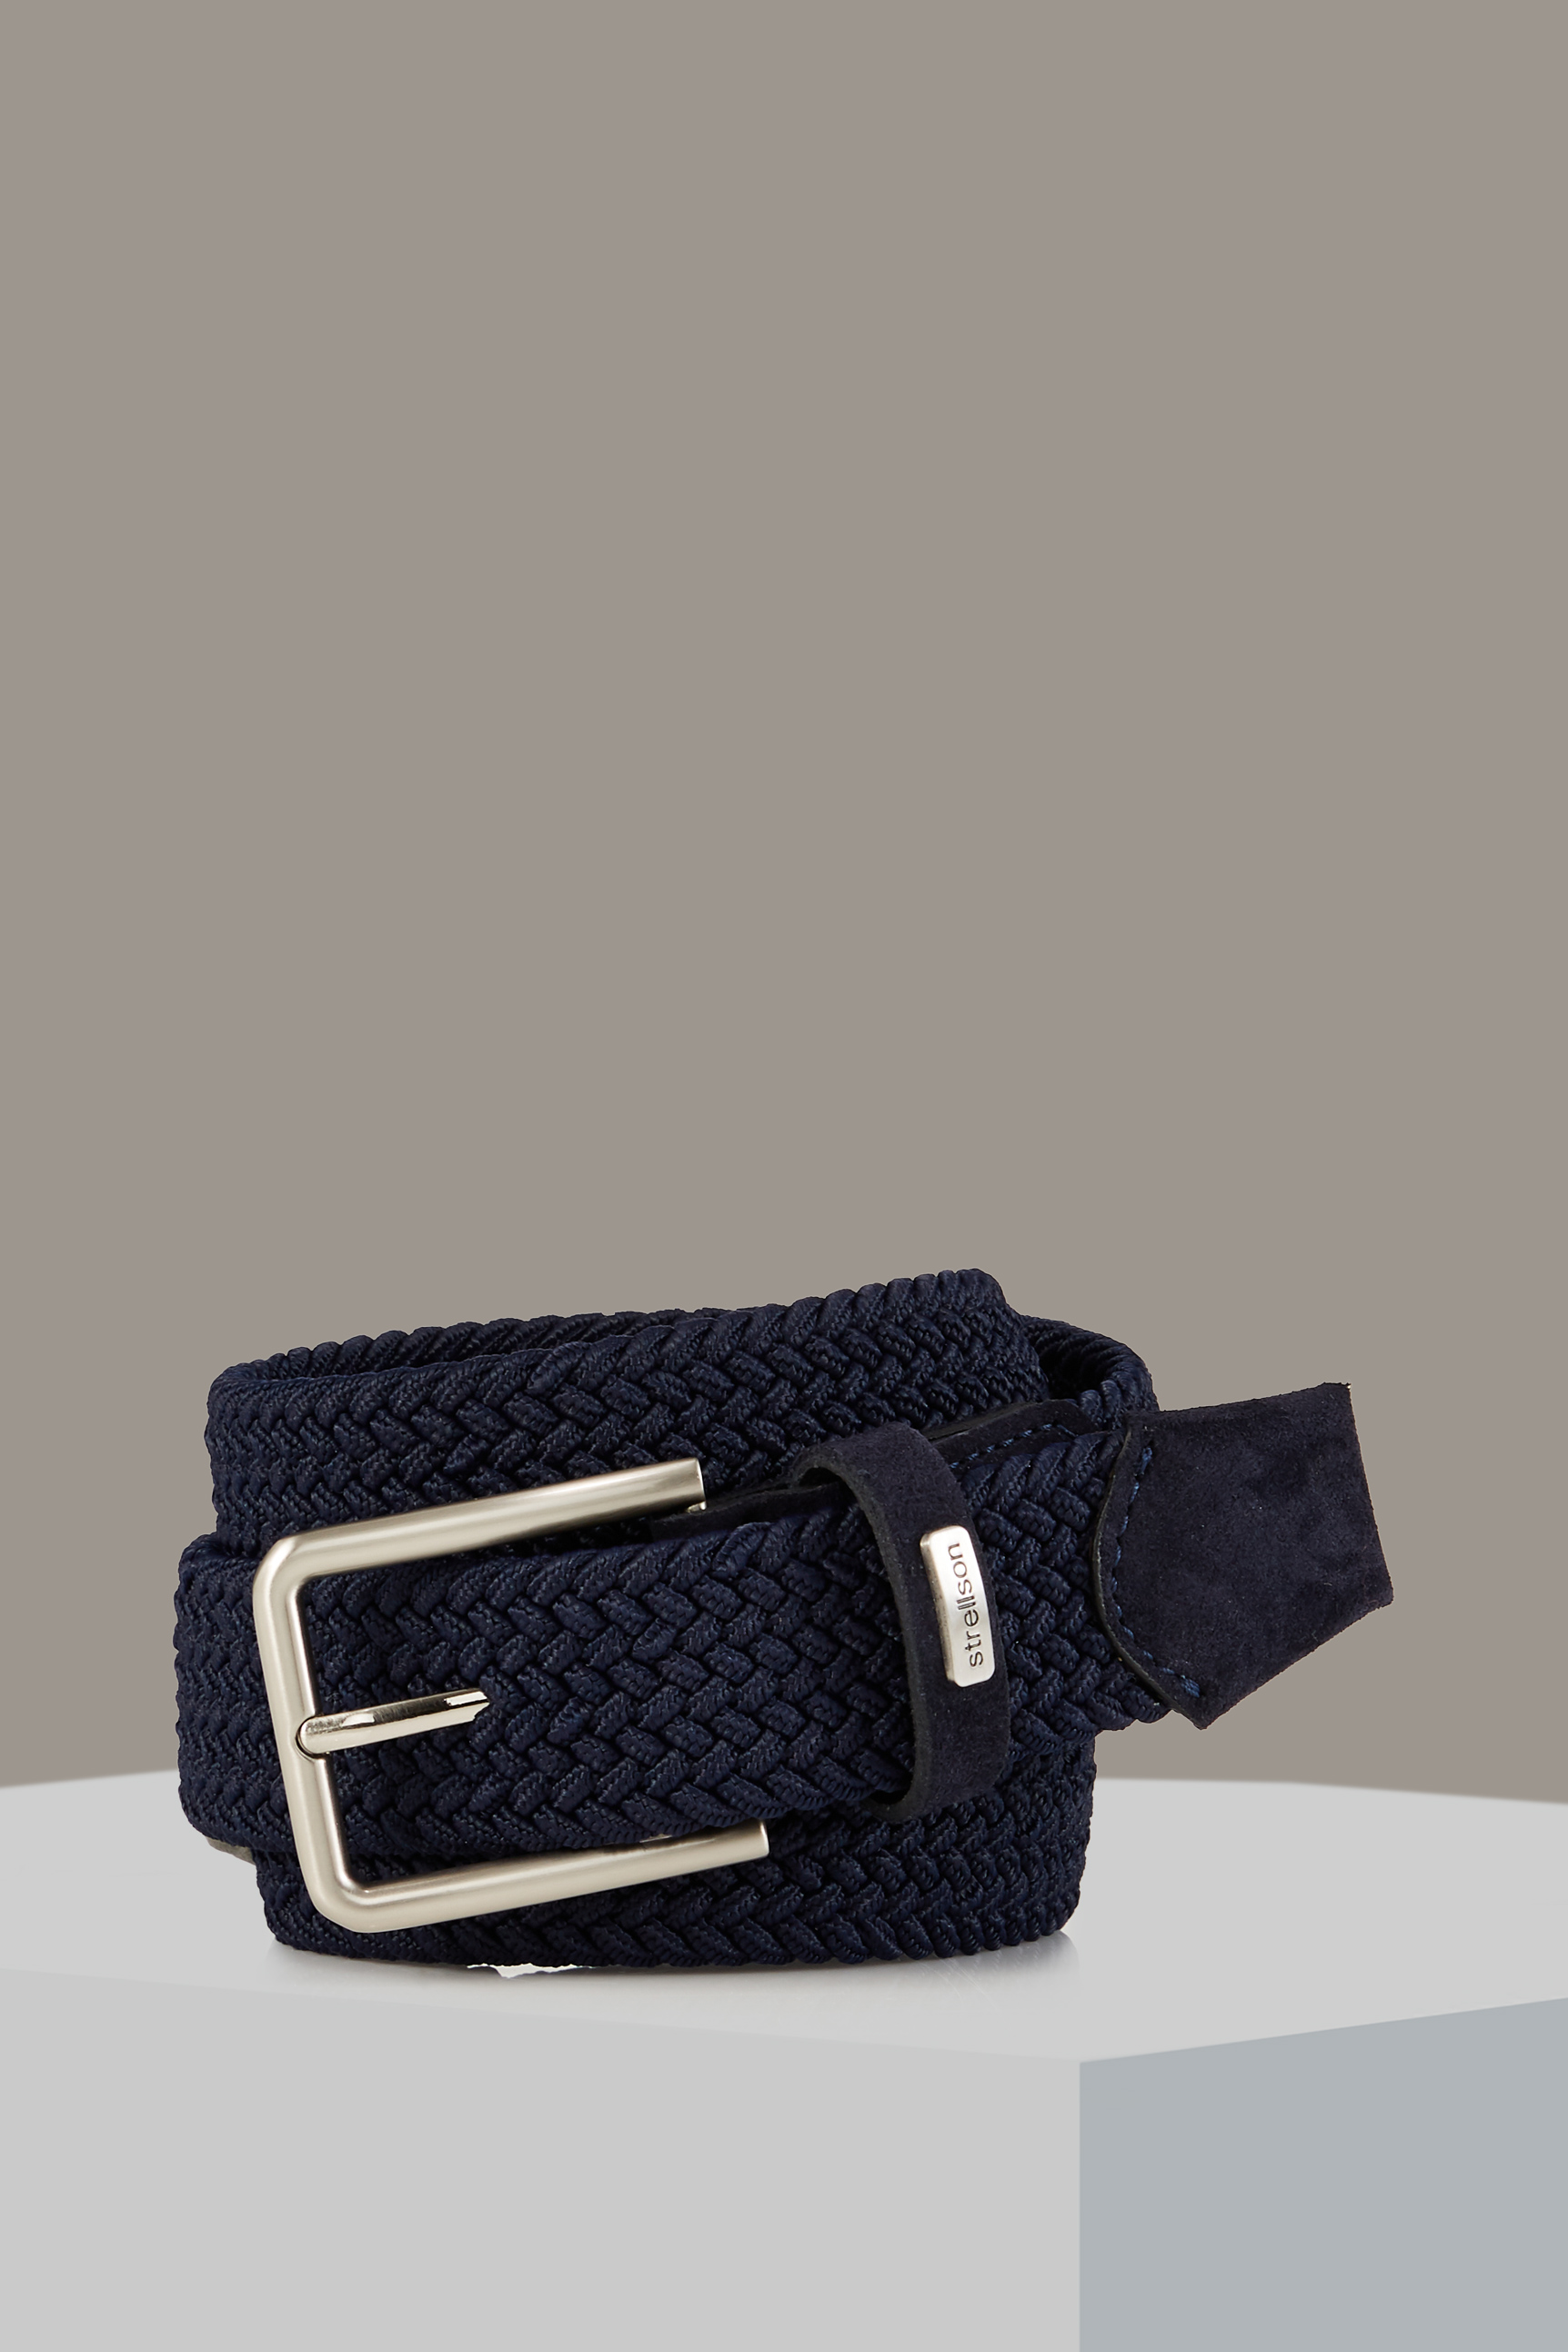 Ceinture Flex Cross, navy